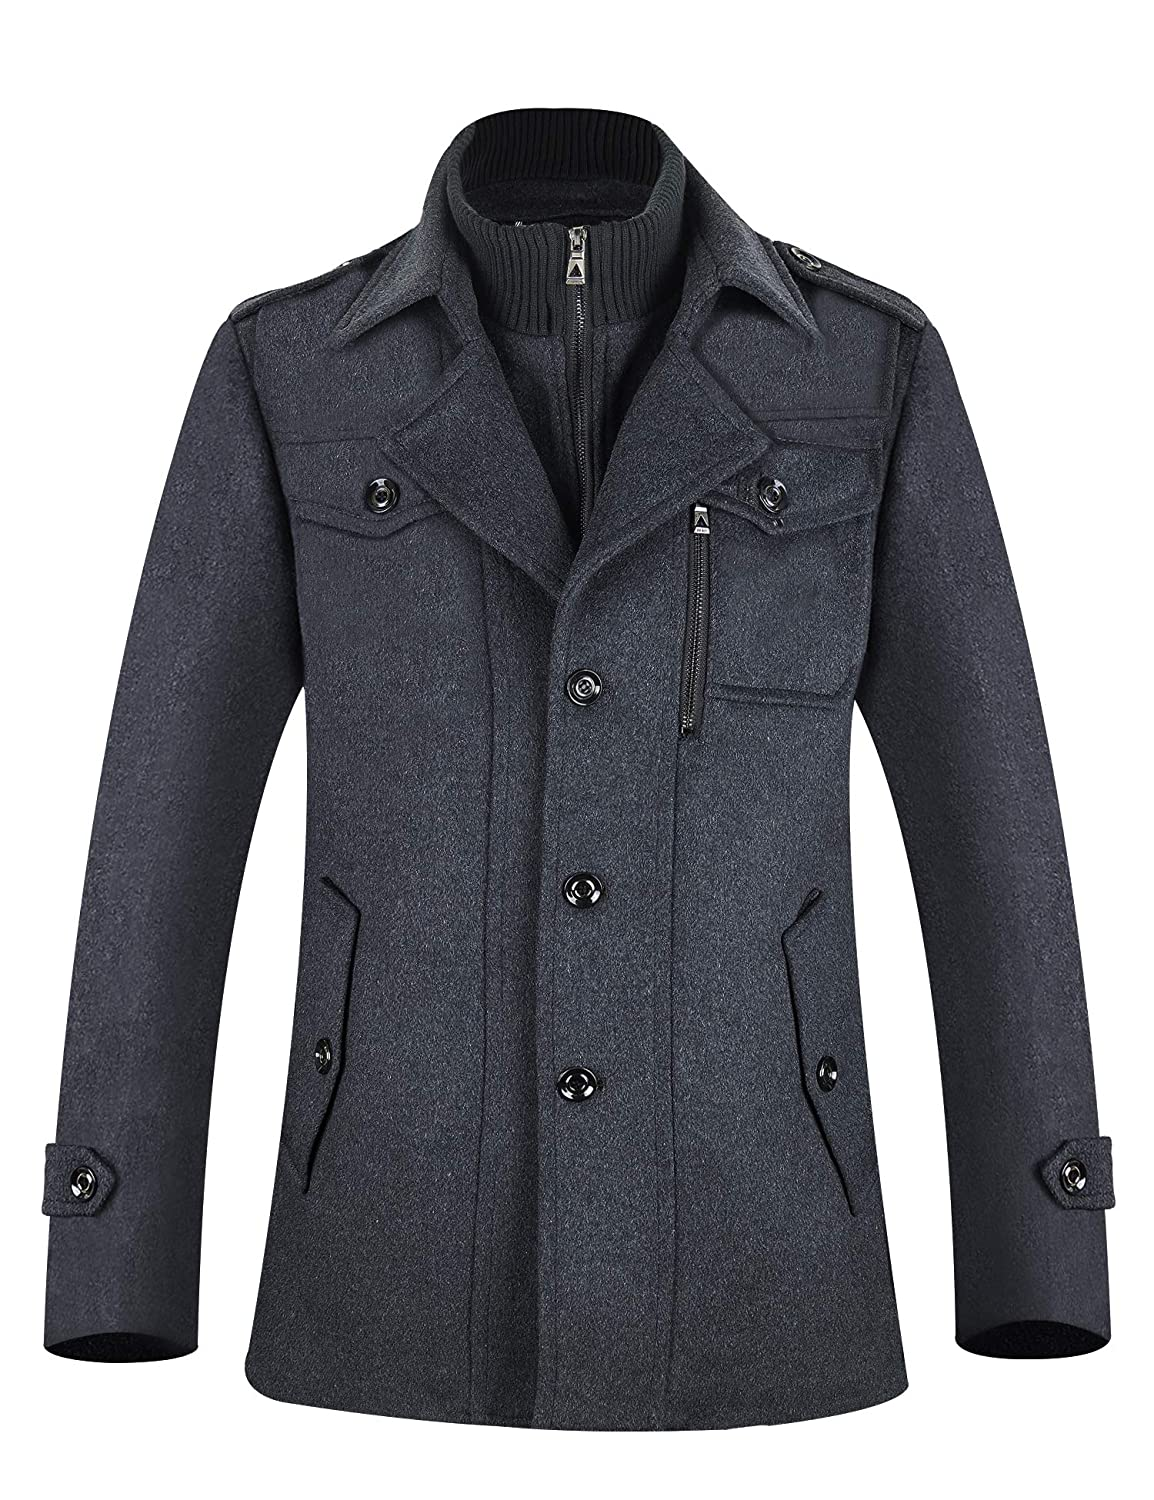 2a8cc61cfa7 APTRO Men's Winter Slim Fit Wool Coat Single Breasted Wool Trench Coats:  Amazon.ca: Clothing & Accessories